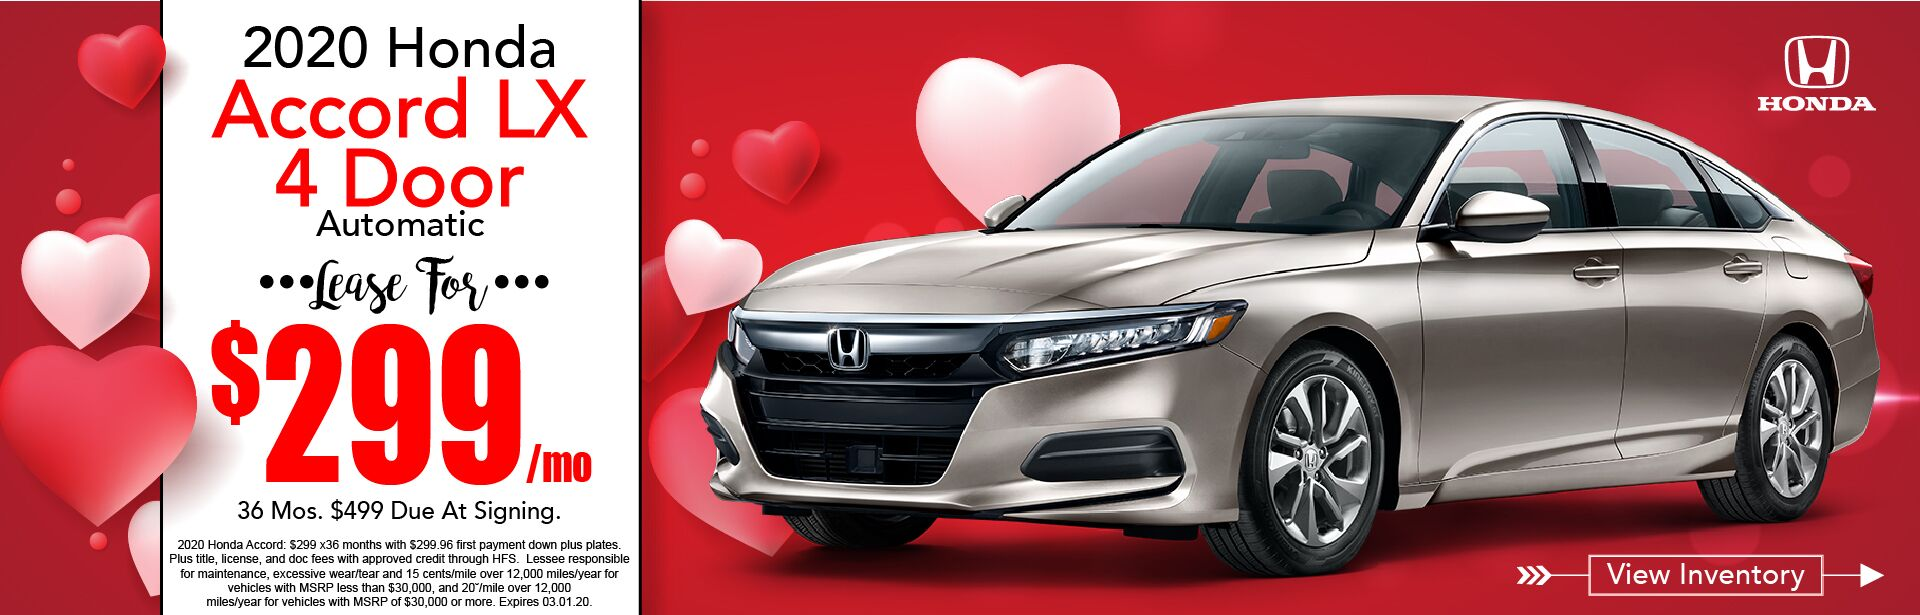 2019 Honda Accord LX Lease for $339